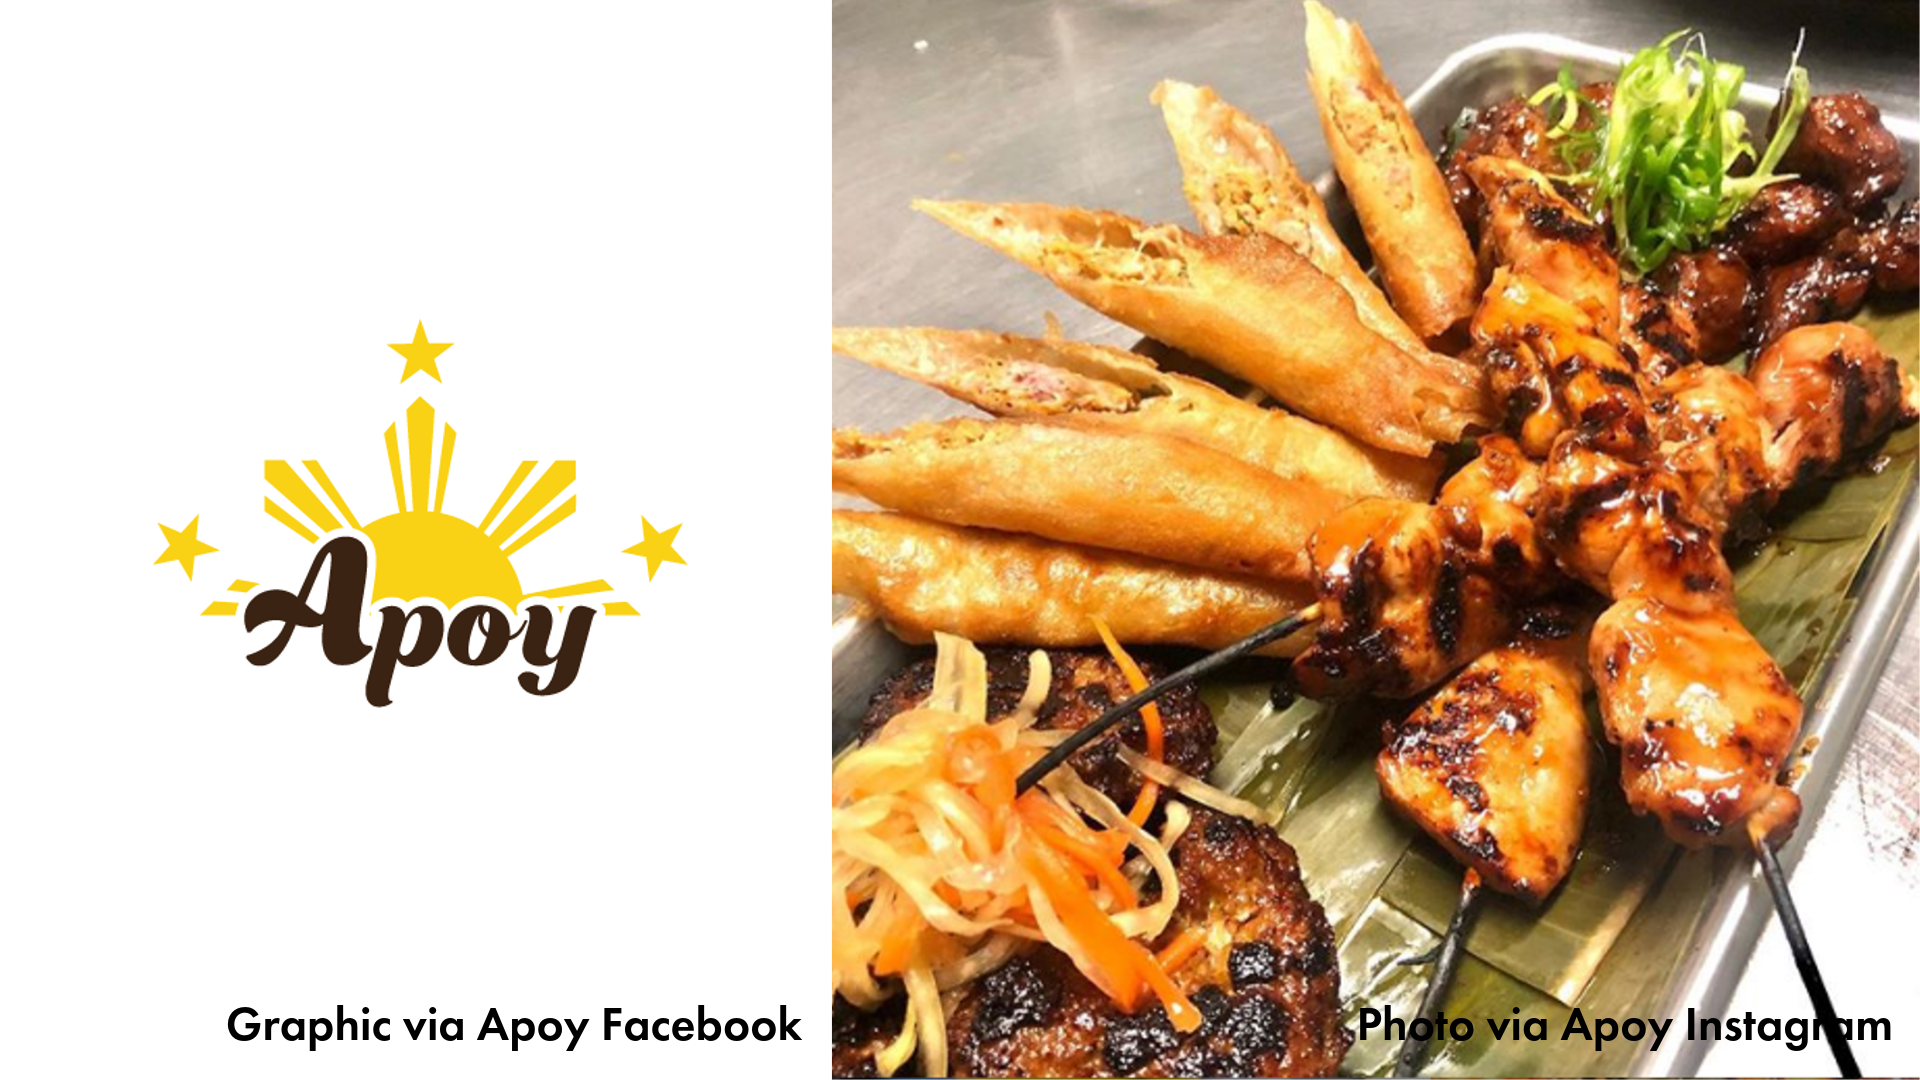 Apoy logo and picture of their food